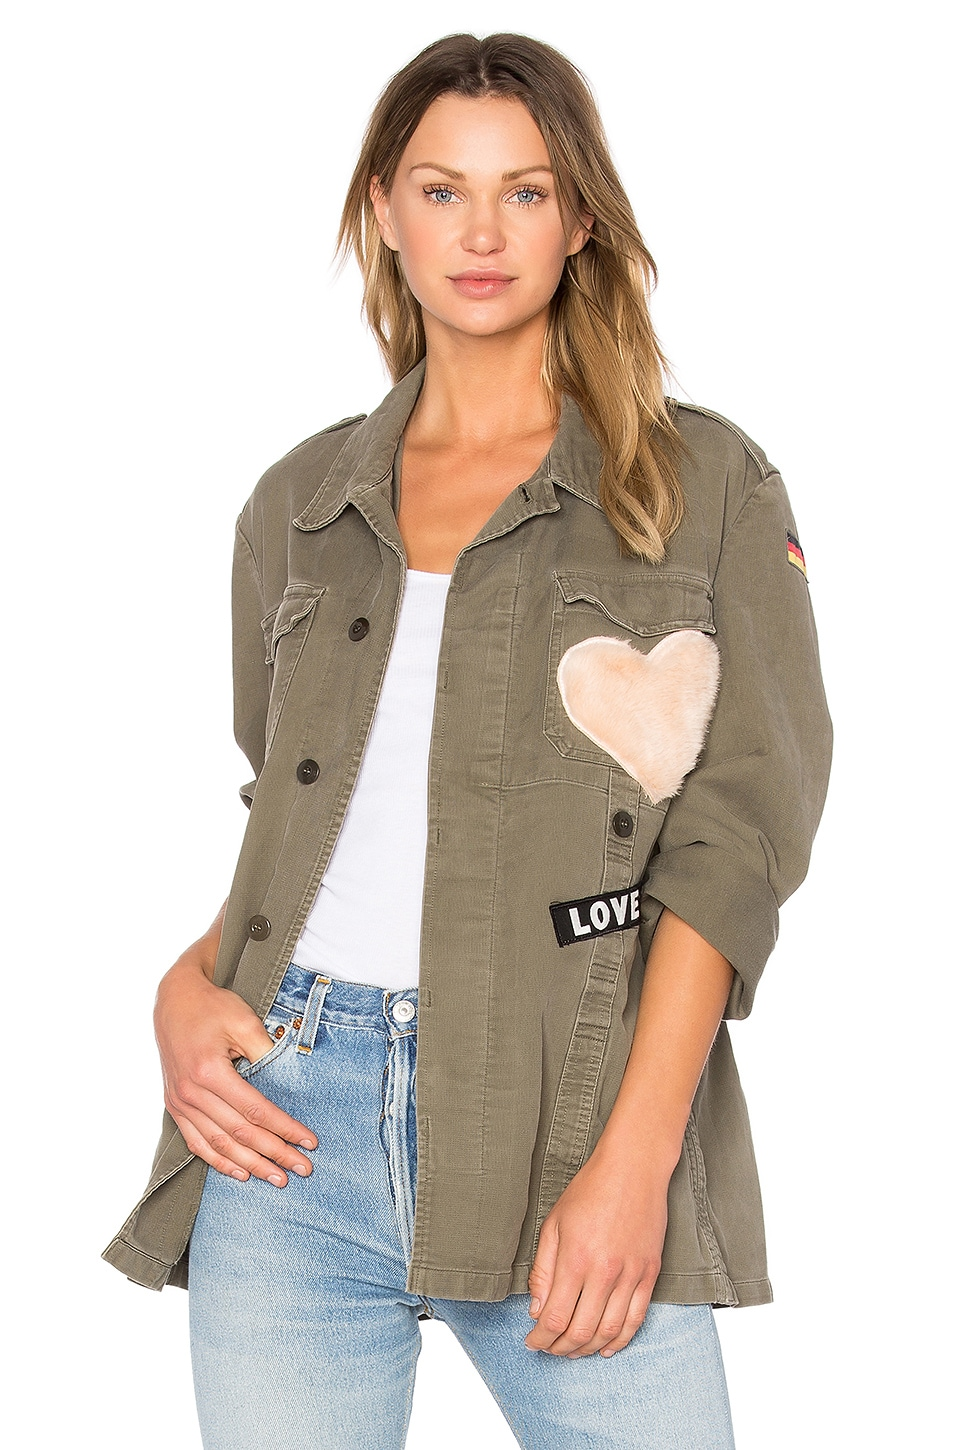 MPD BOX Moleskine Babe Jacket With Stars and Faux Fur Heart in Military